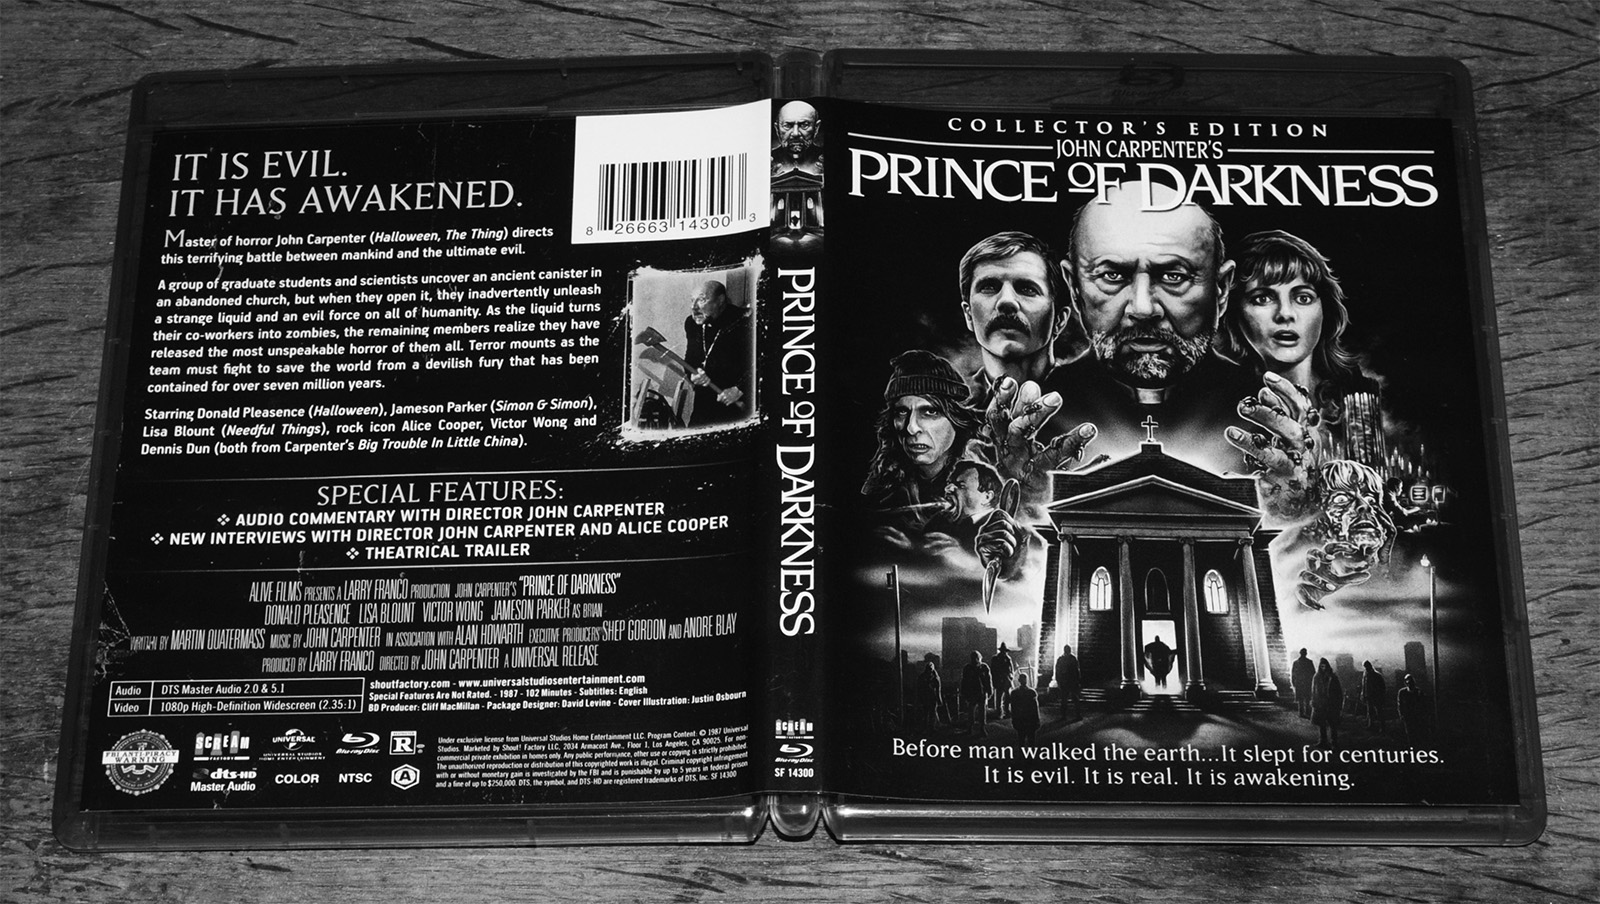 John carpenters prince of darkness part 1 the sleeper awakens john carpenters prince of darkness part 1 the sleeper awakens wanderings explorations and signposts 2252 fandeluxe Images